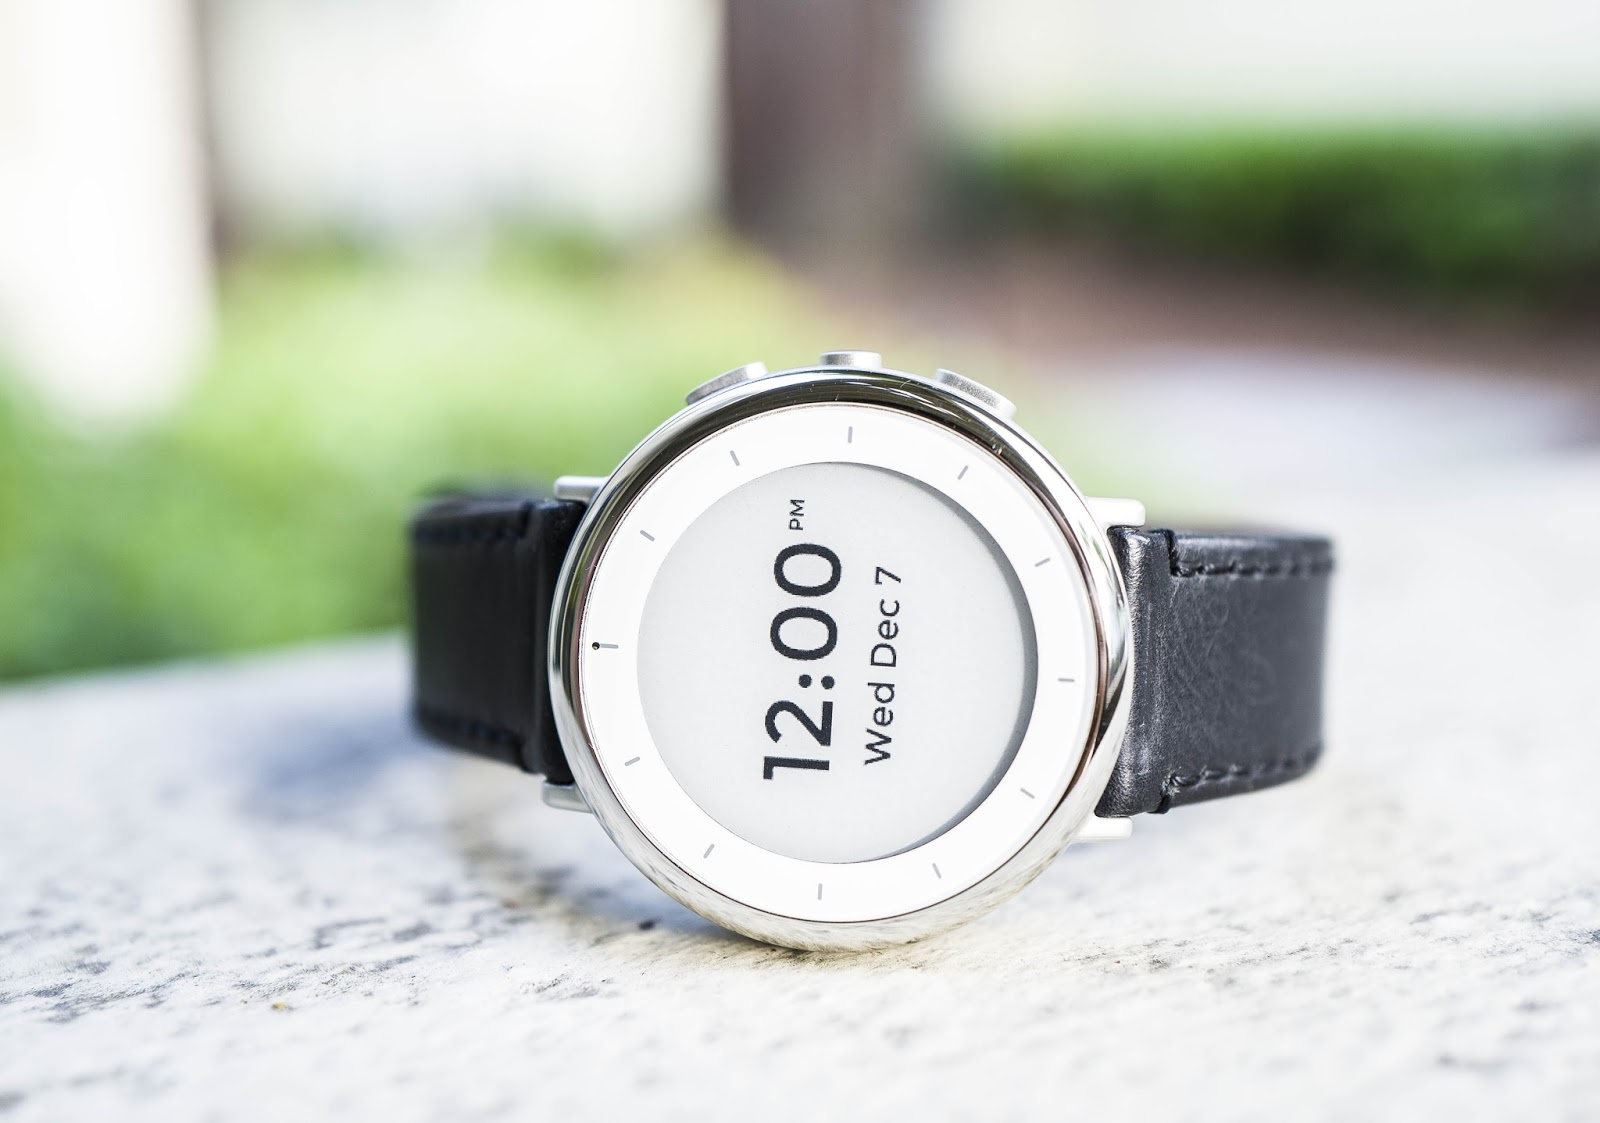 Alphabet's health division made a better smartwatch than Google could